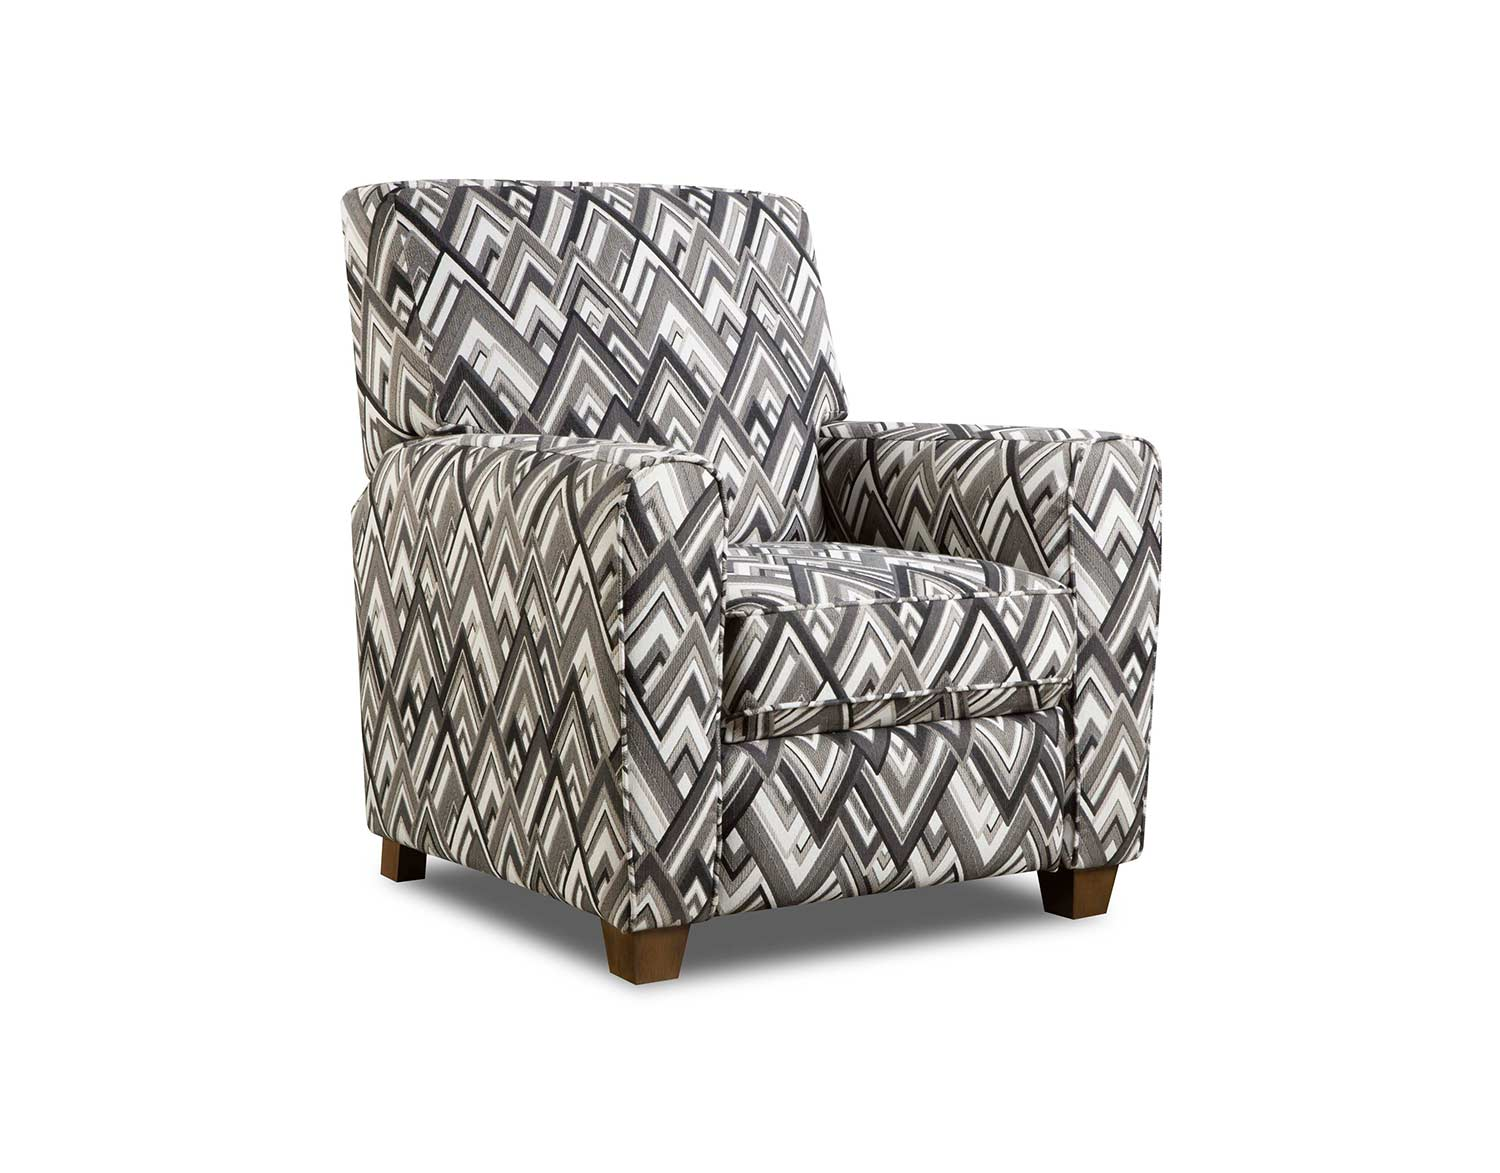 Chelsea Home Barras Recliner Chair - Boomerang Domino